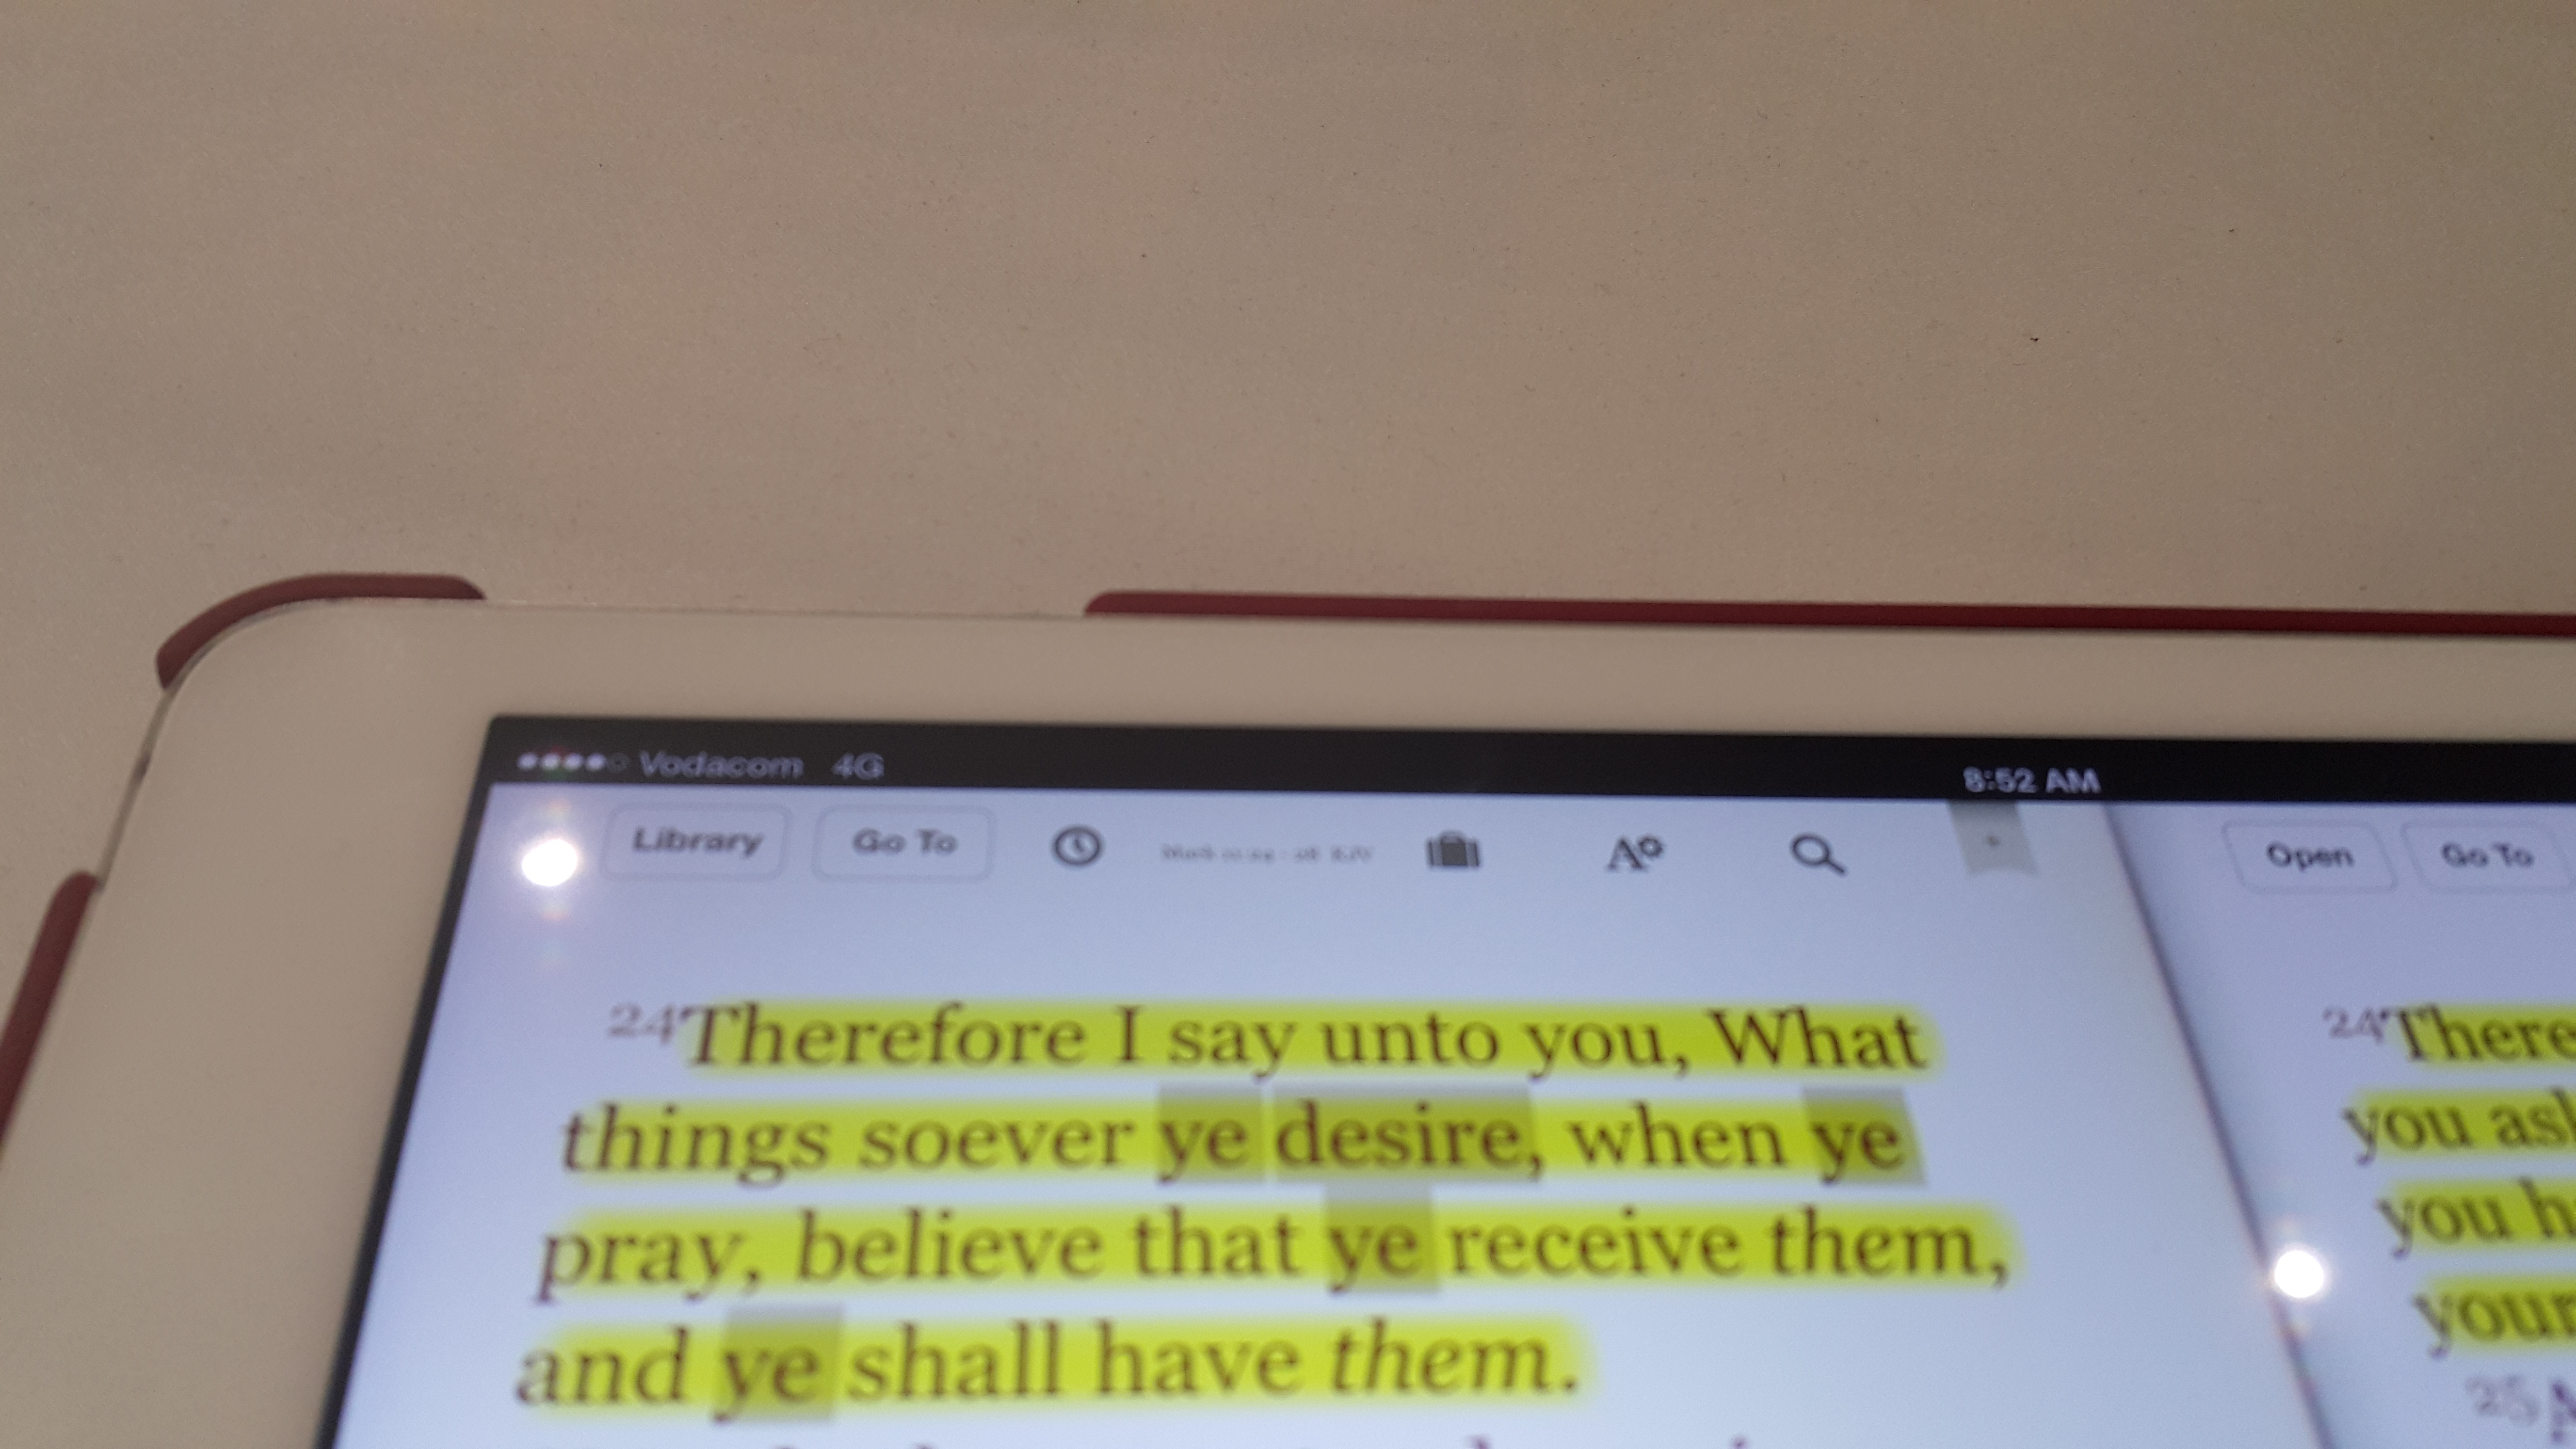 THIS SCRIPTURE - KABAYEEEE